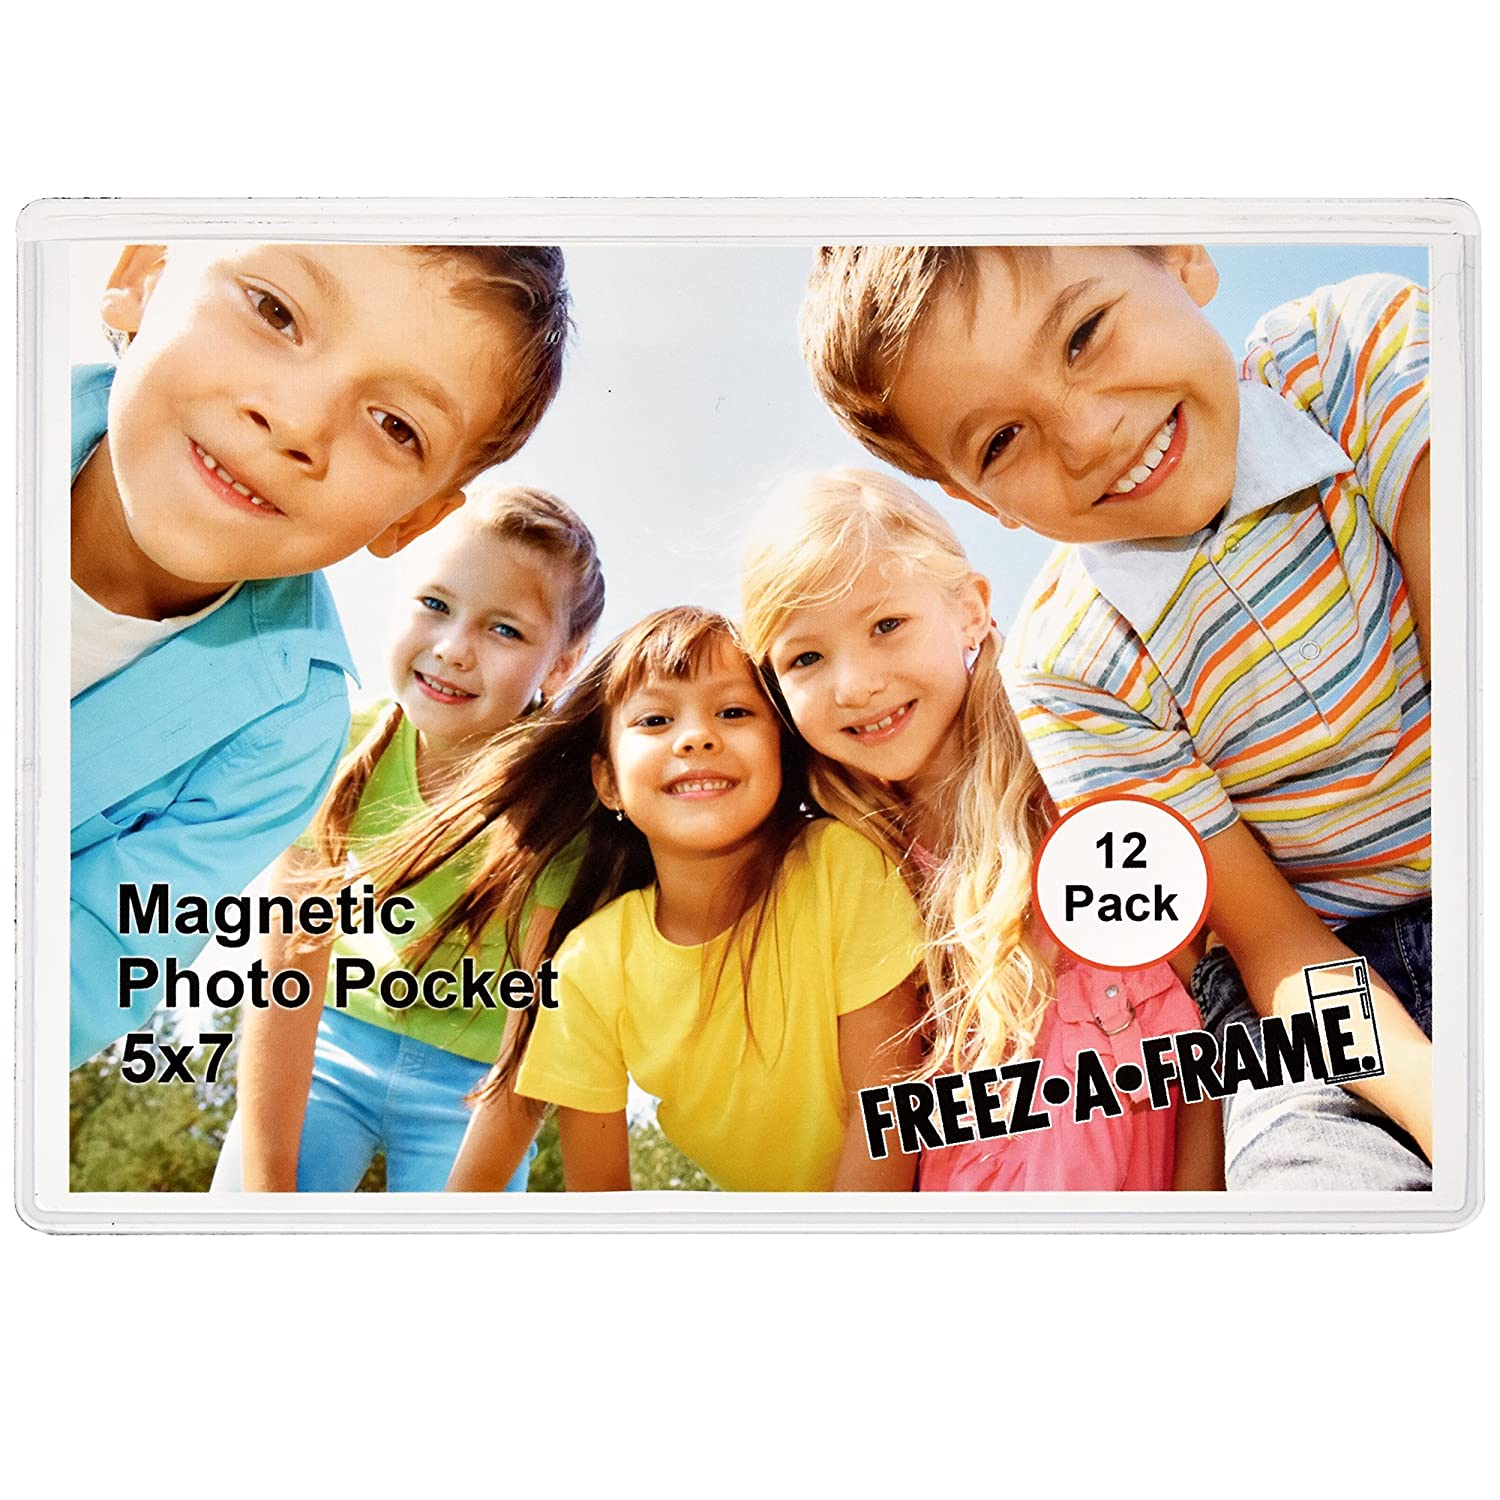 12 Pack 5 x 7 Magnetic Picture Frames Pockets Sleeves Holds 5 x 7 Inches Photo for Refrigerator by Freez-A-Frame Made in The USA Freeze A Frame